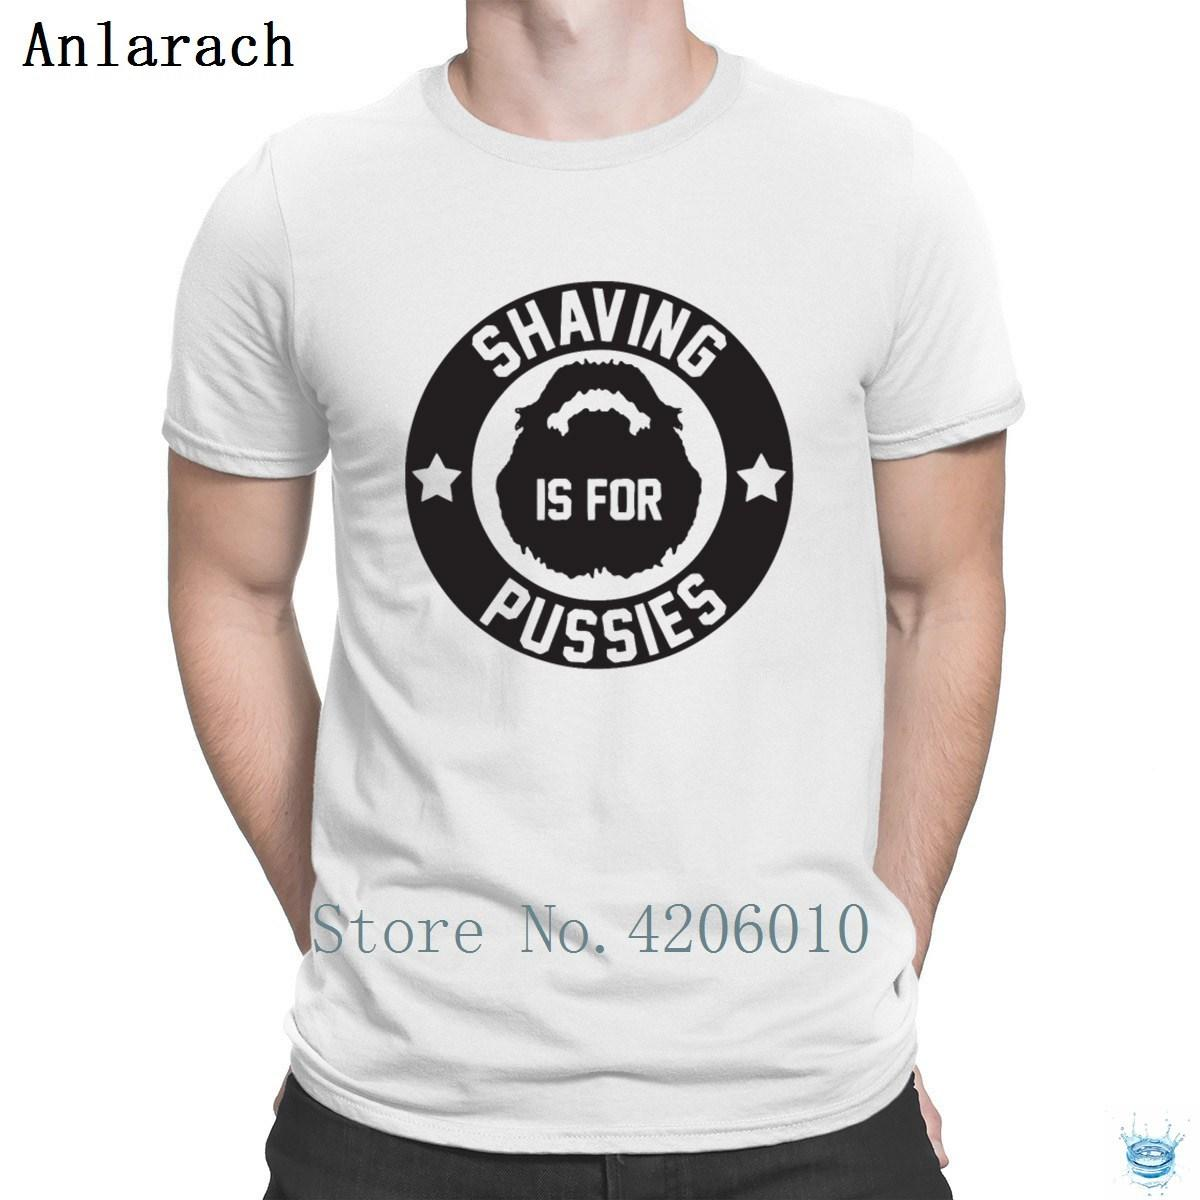 Shaving For Pussies T Shirt Best Fit Family Pictures T Shirt For Men Round Collar Design Tee Tops Anlarach Spring Autumn Tee T Good T Shirt Design From Dzuprightc 16 15 Dhgate Com